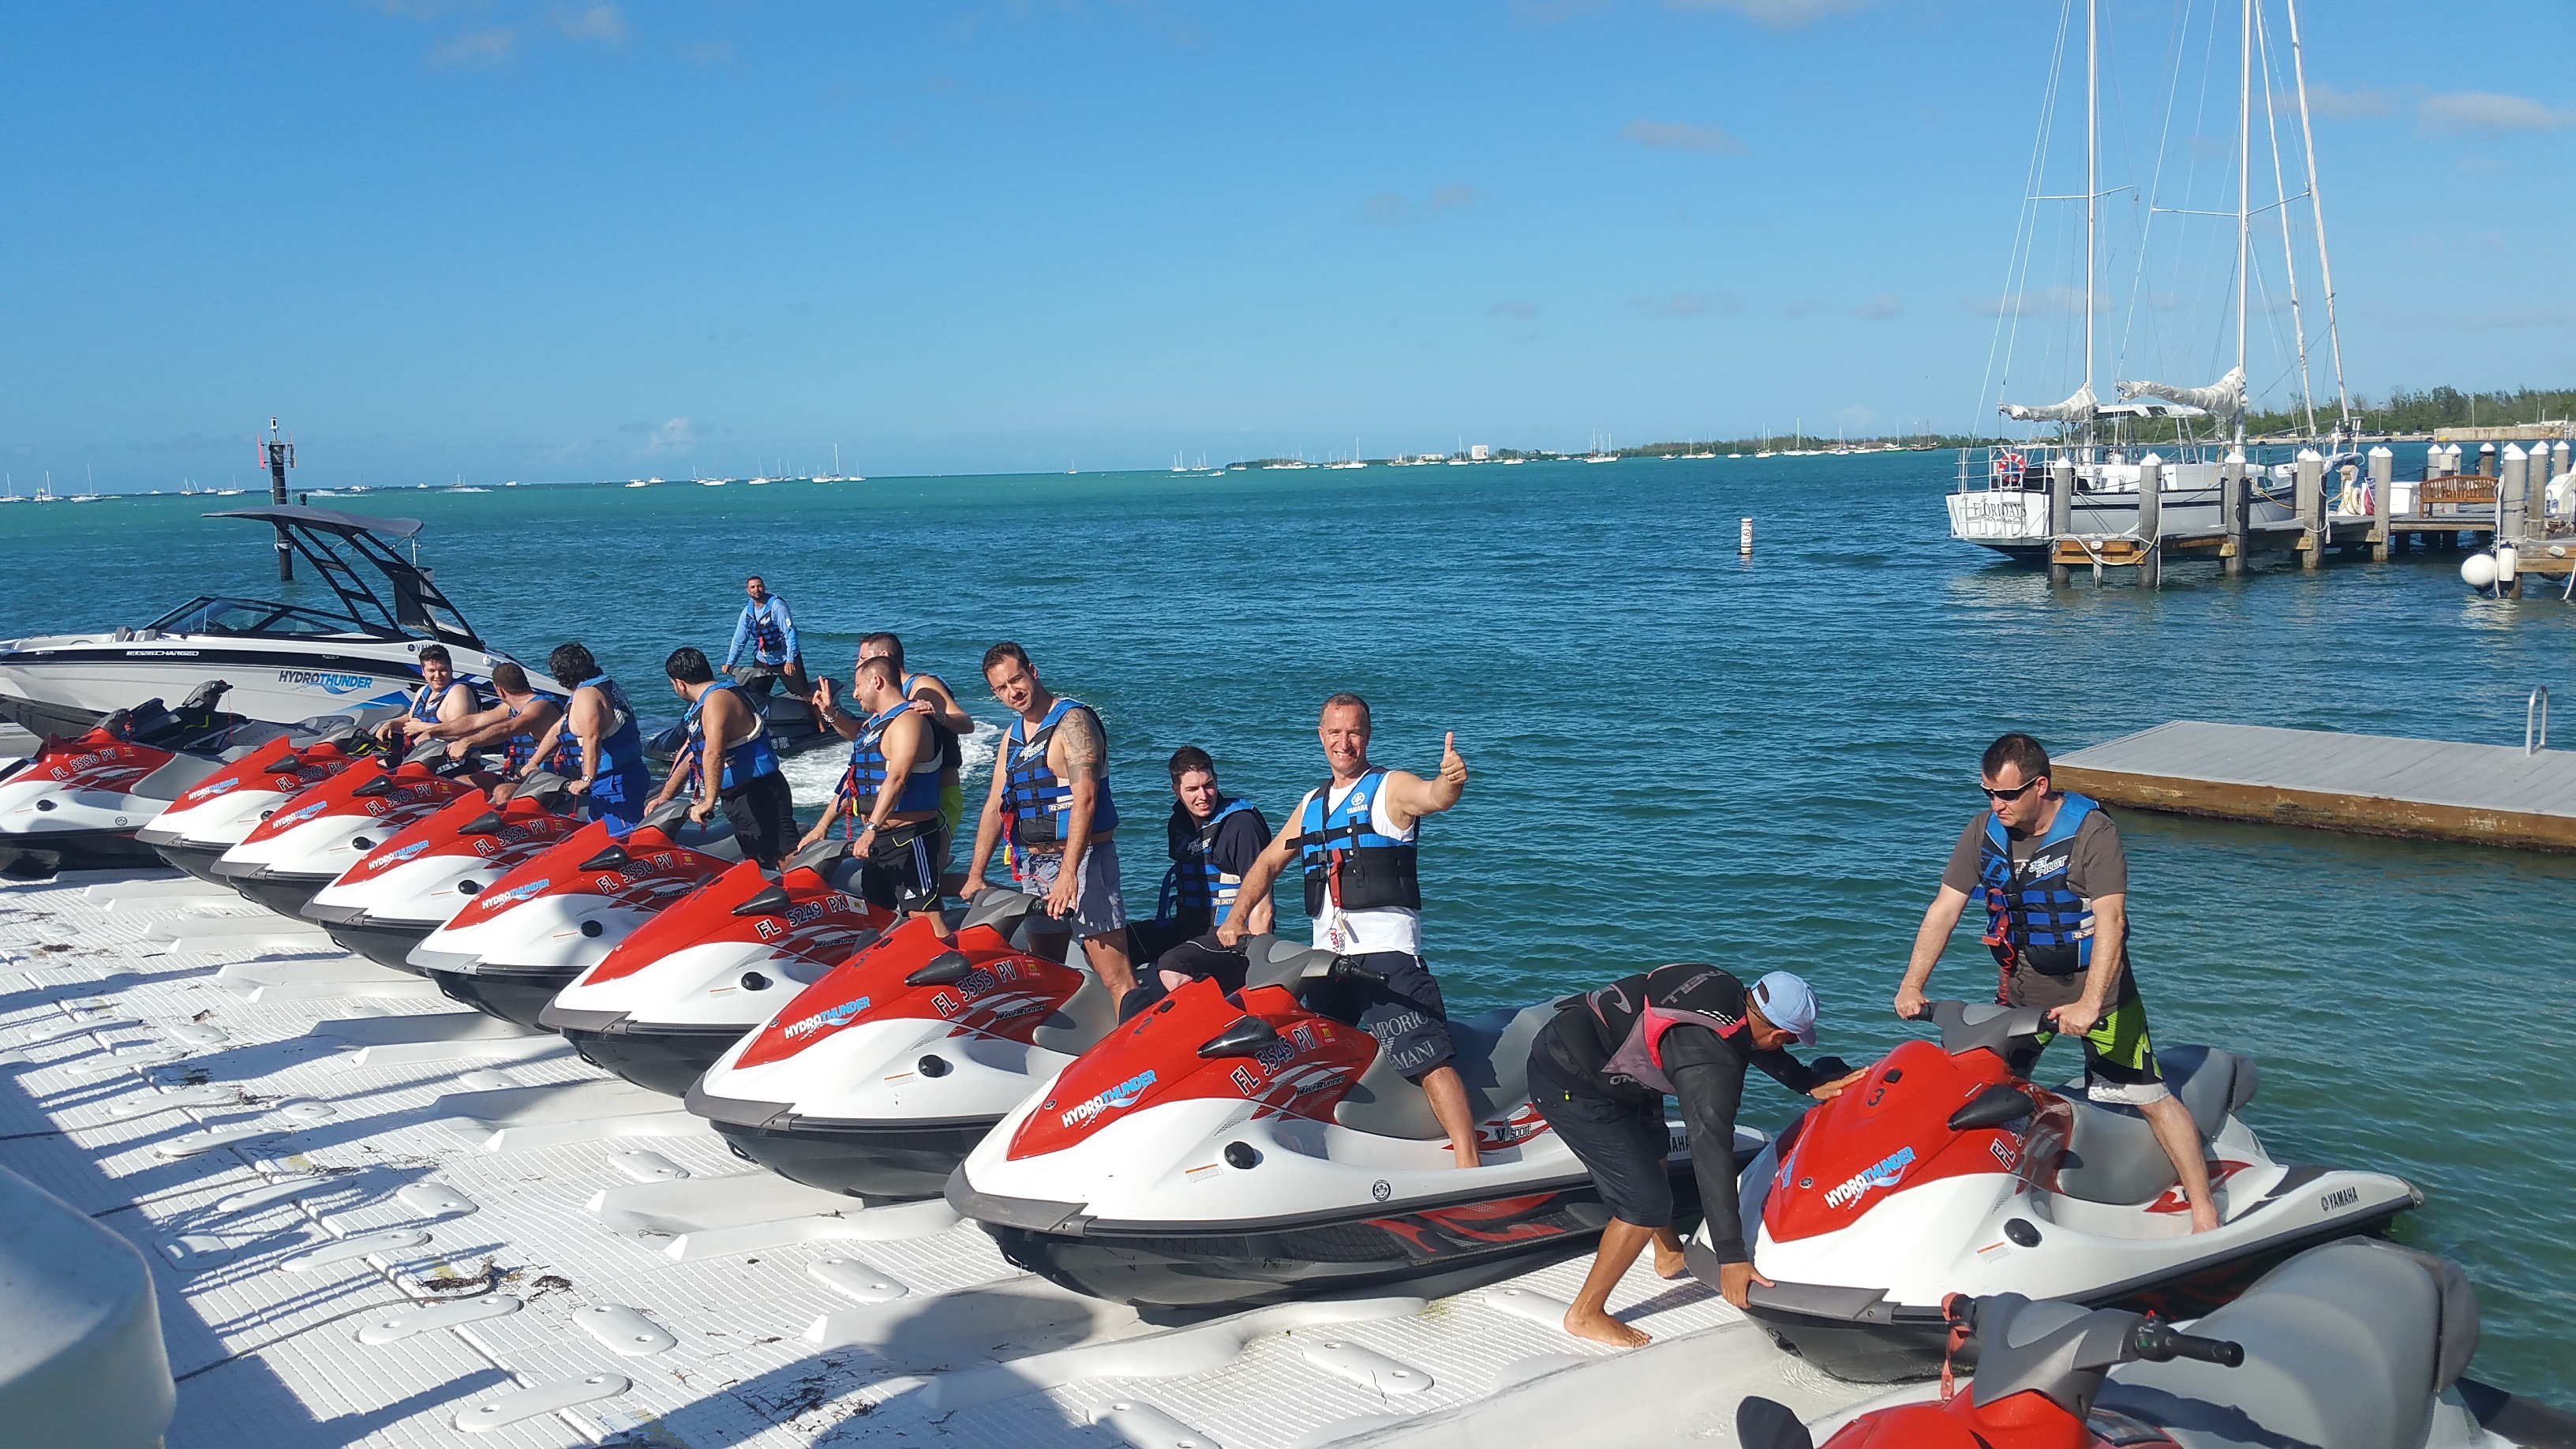 Jetski City Tour Key West